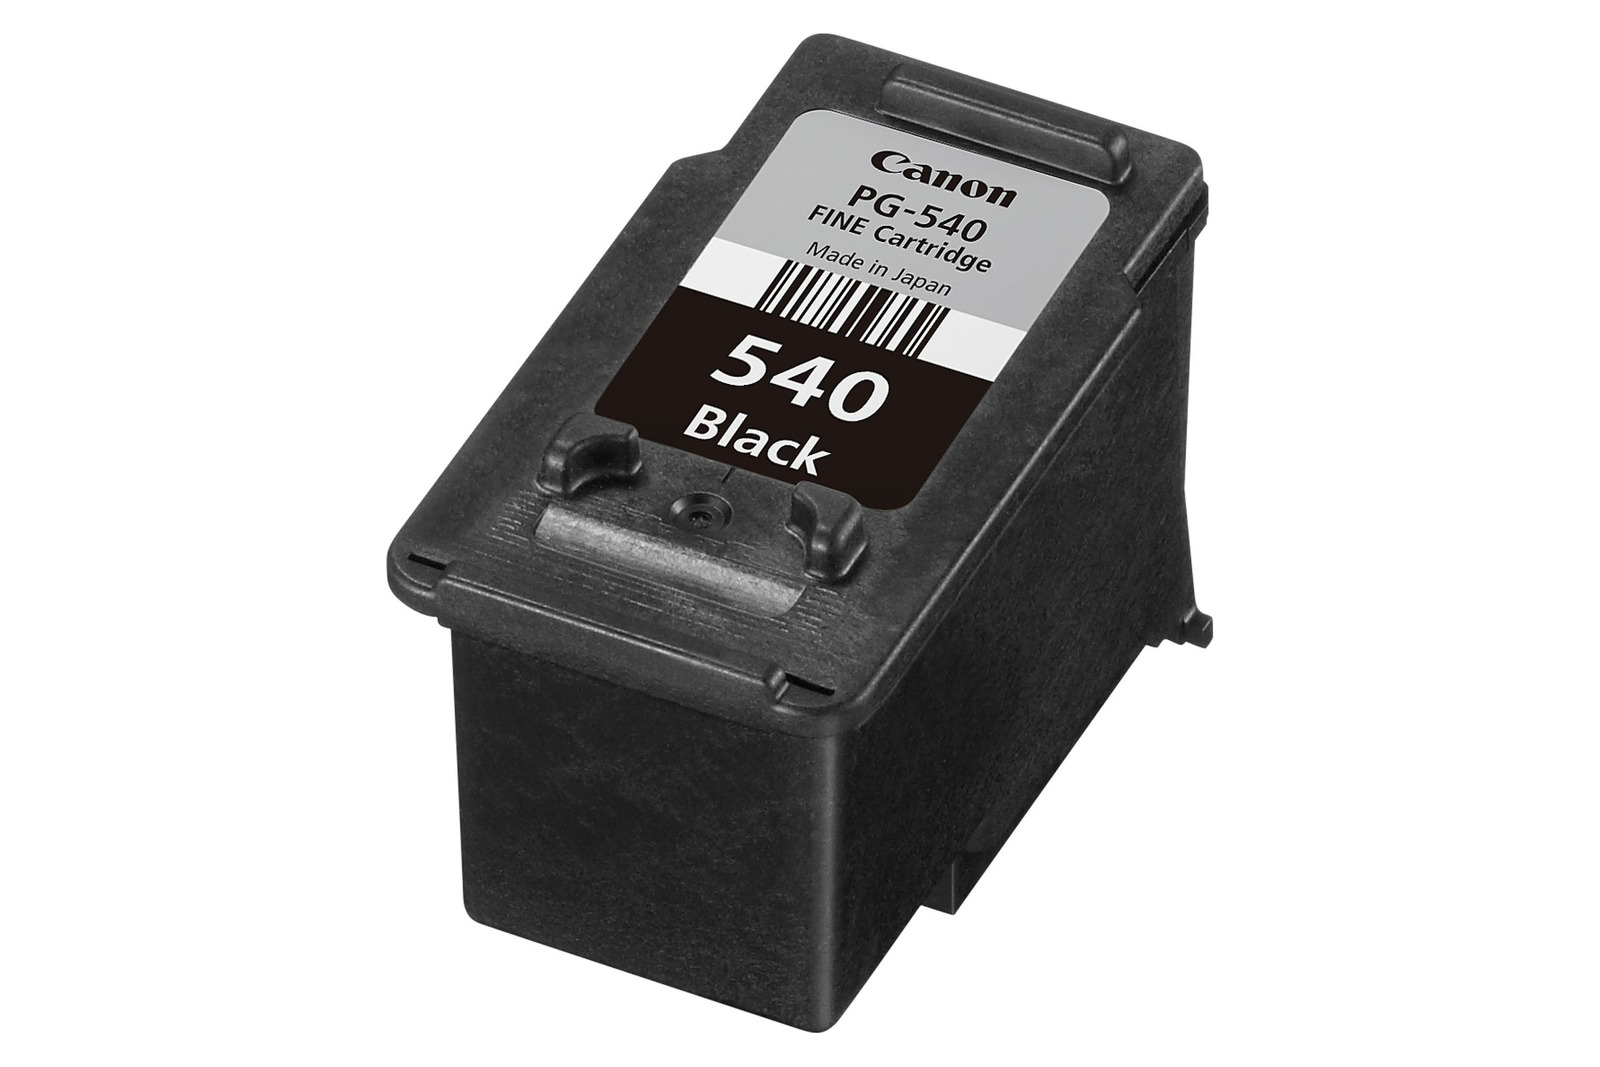 Genuine Ink Cartridge Canon PG-540 Black